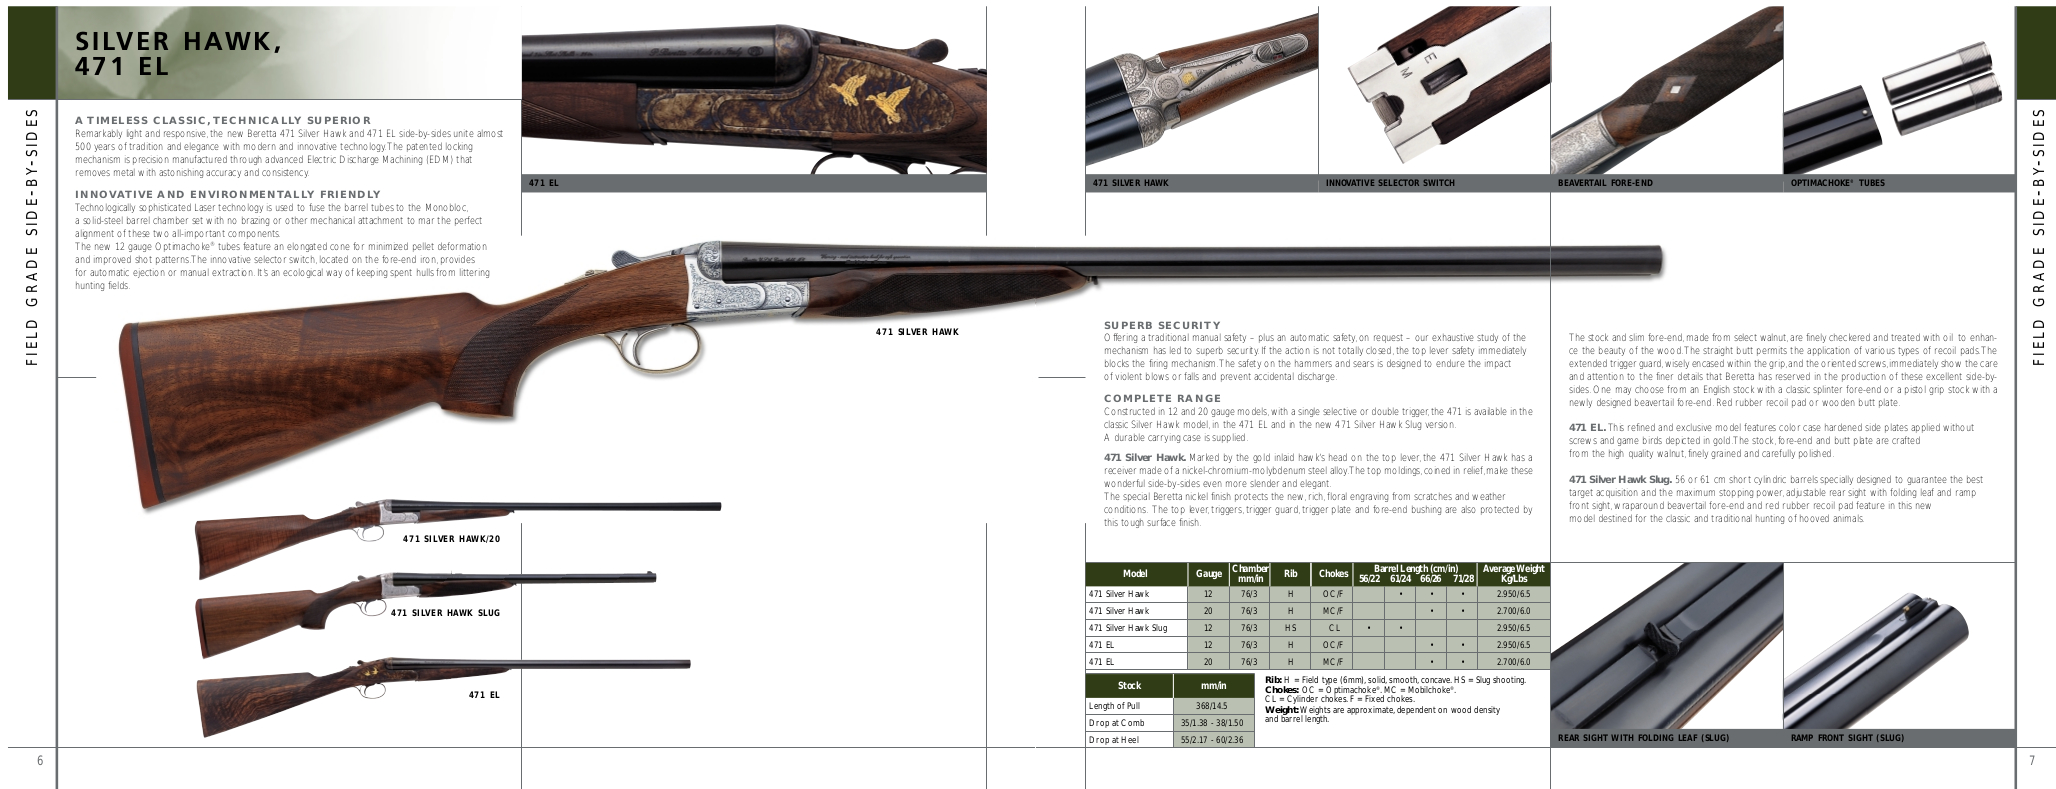 The various models of the Beretta Silver Hawk 471 range. (Picture courtesy Beretta)